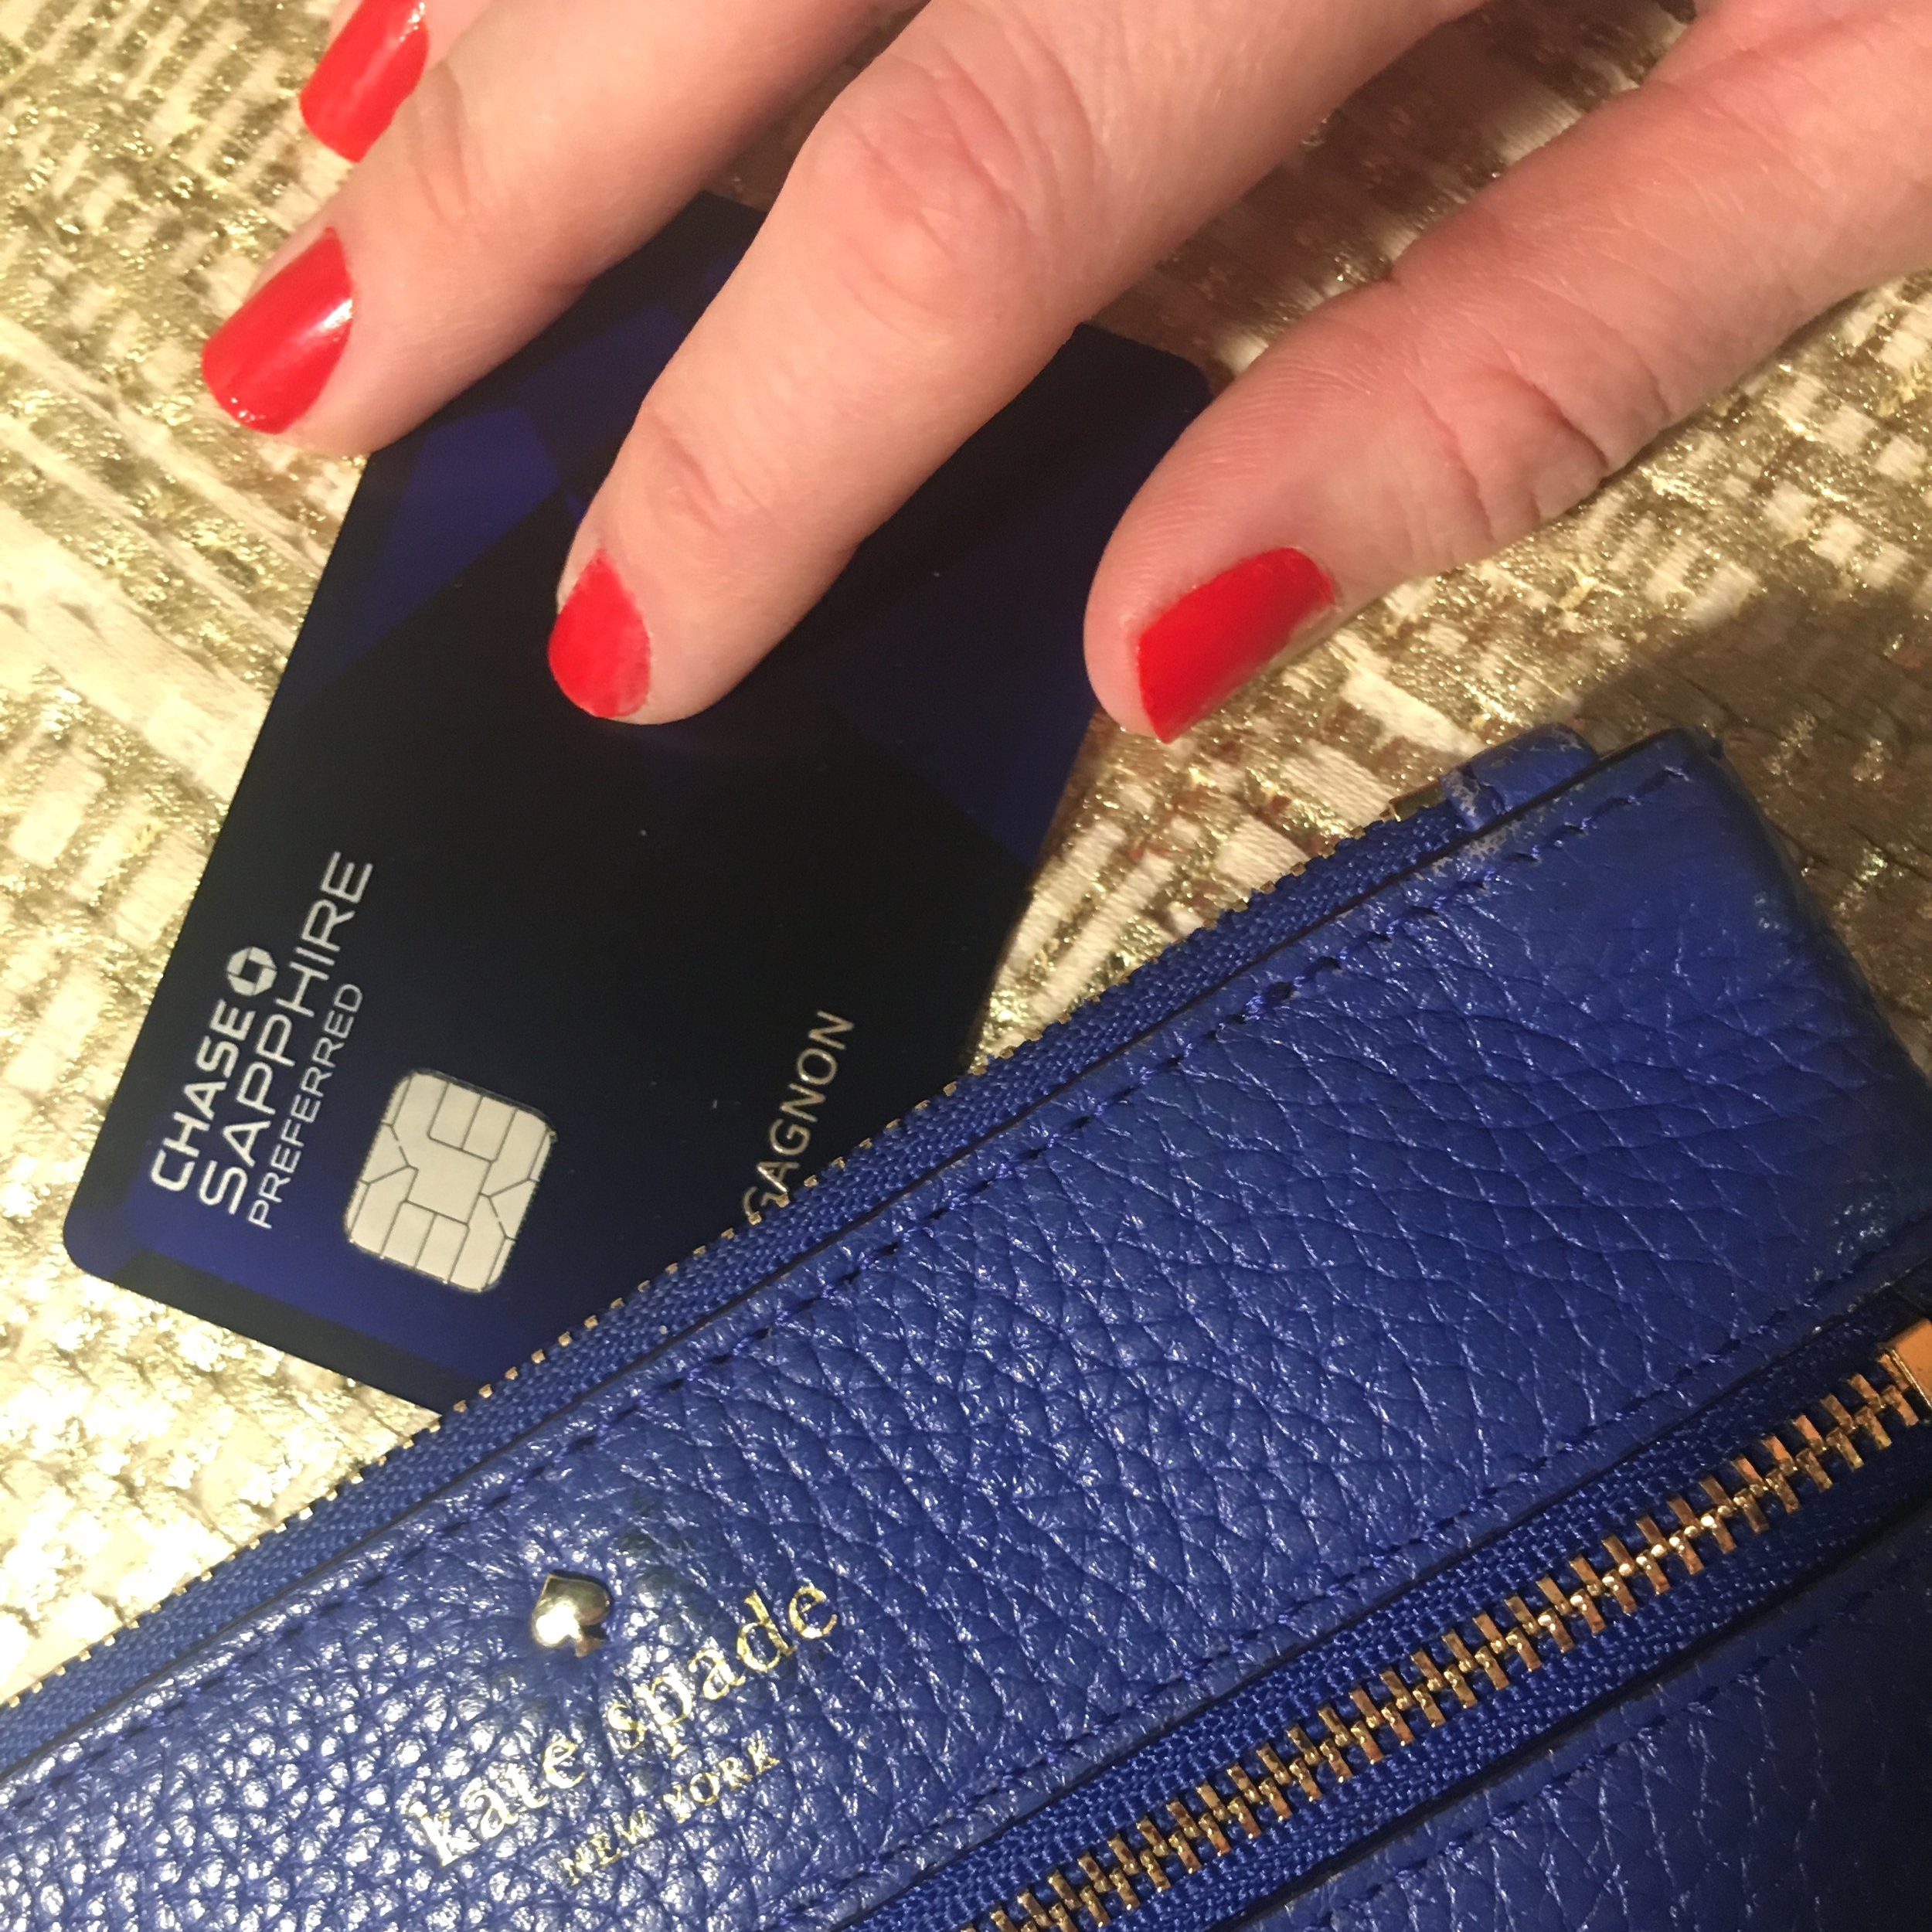 I travel hacked - with a Chase Sapphire Preferred card first. The bonus gives about $625 in travel points that can transfer to a number of partners.